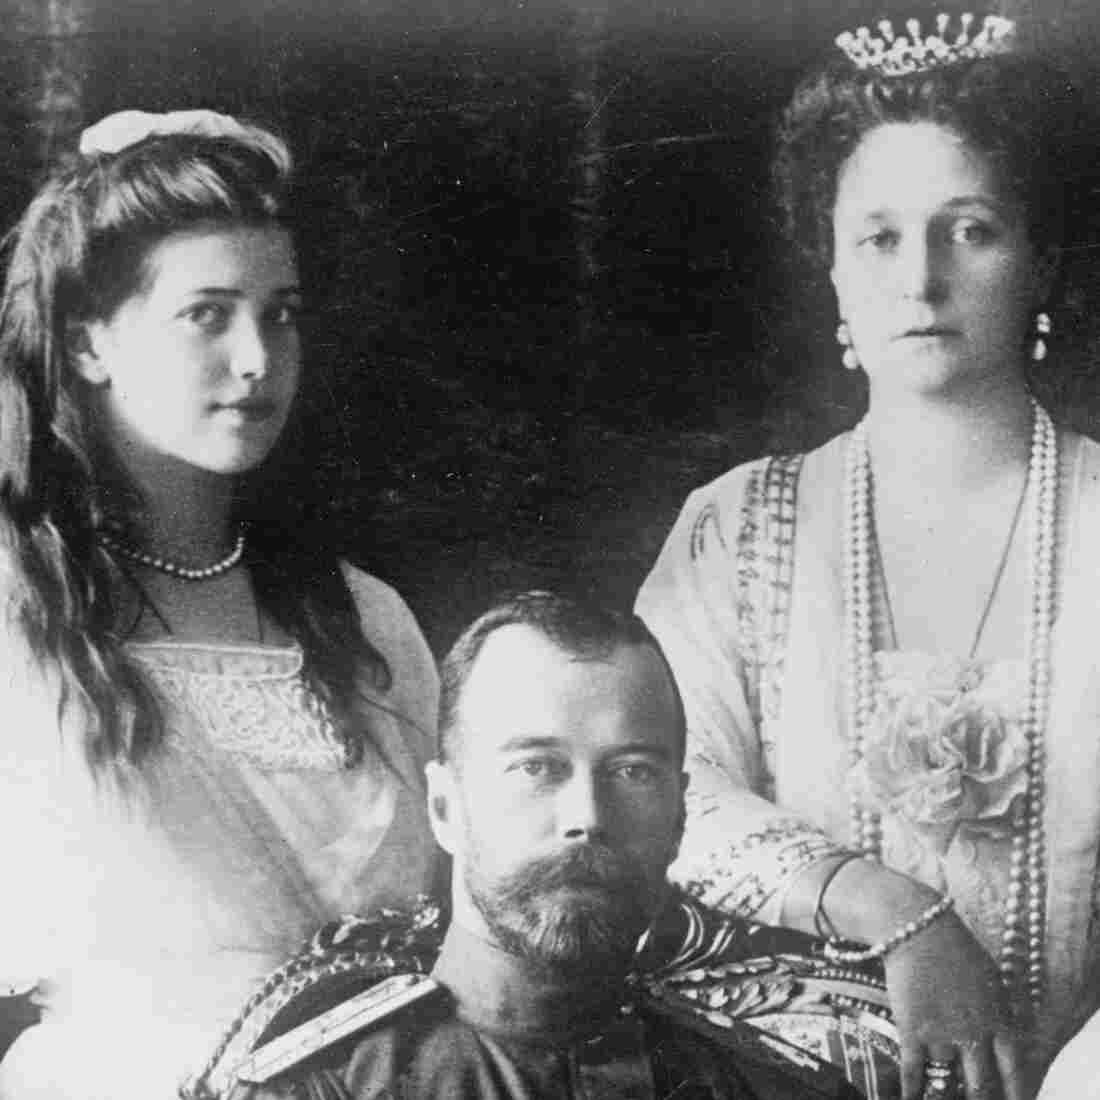 Will DNA Tests Finally Settle Controversy Surrounding Russia's Last Czars?